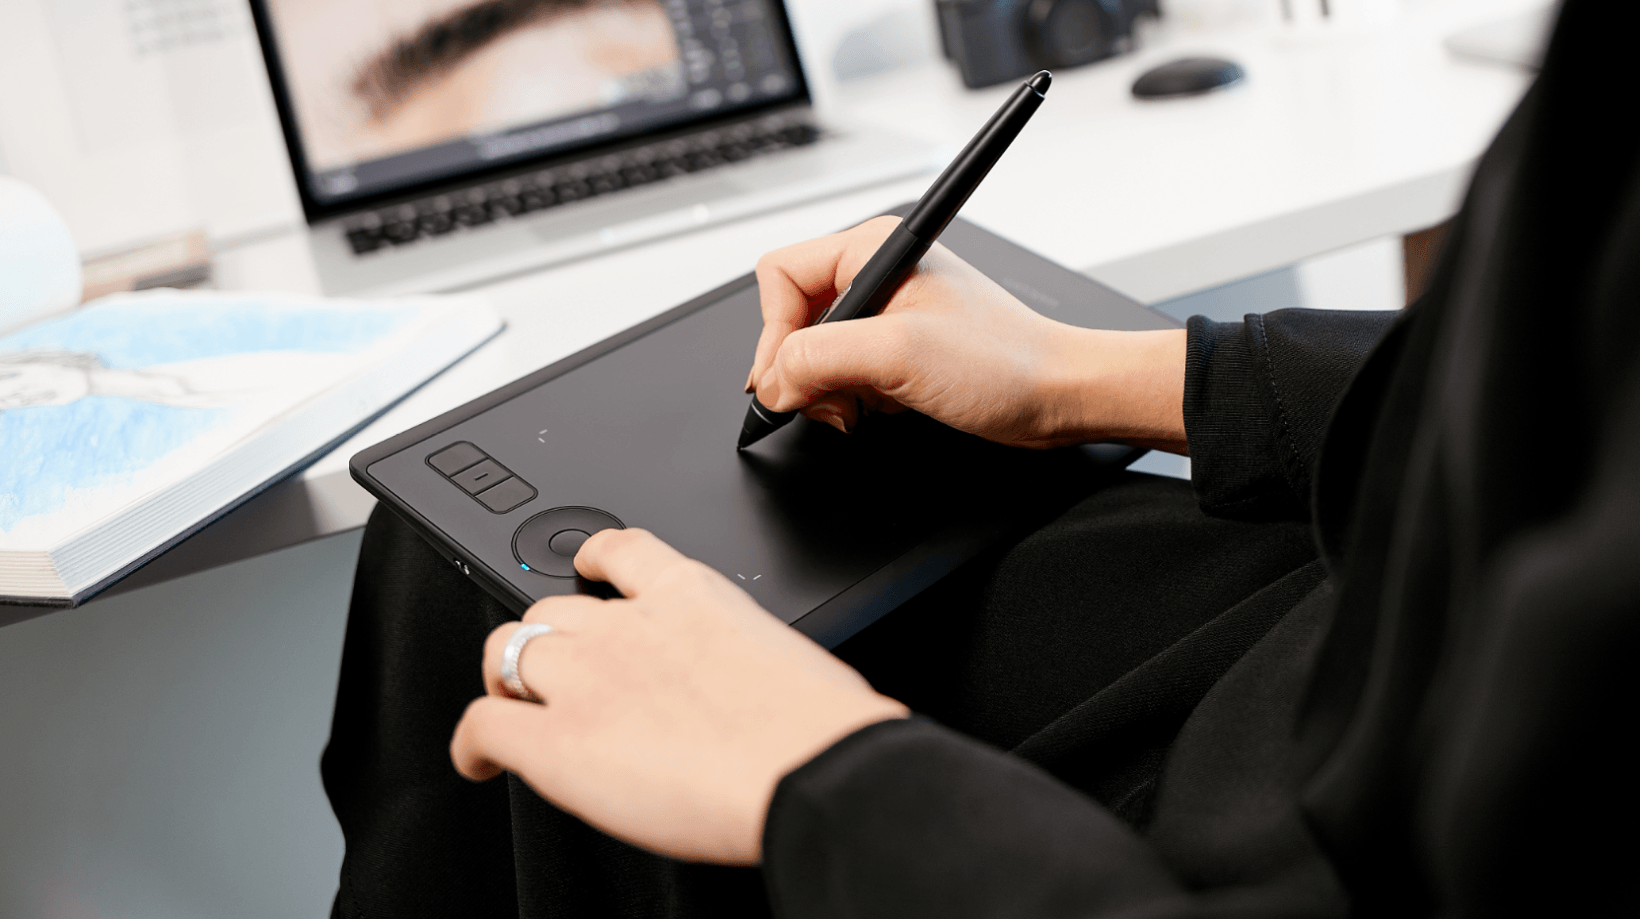 Wacom's new Intuos Pro Small brings serious drawing chops to a $250 portable package